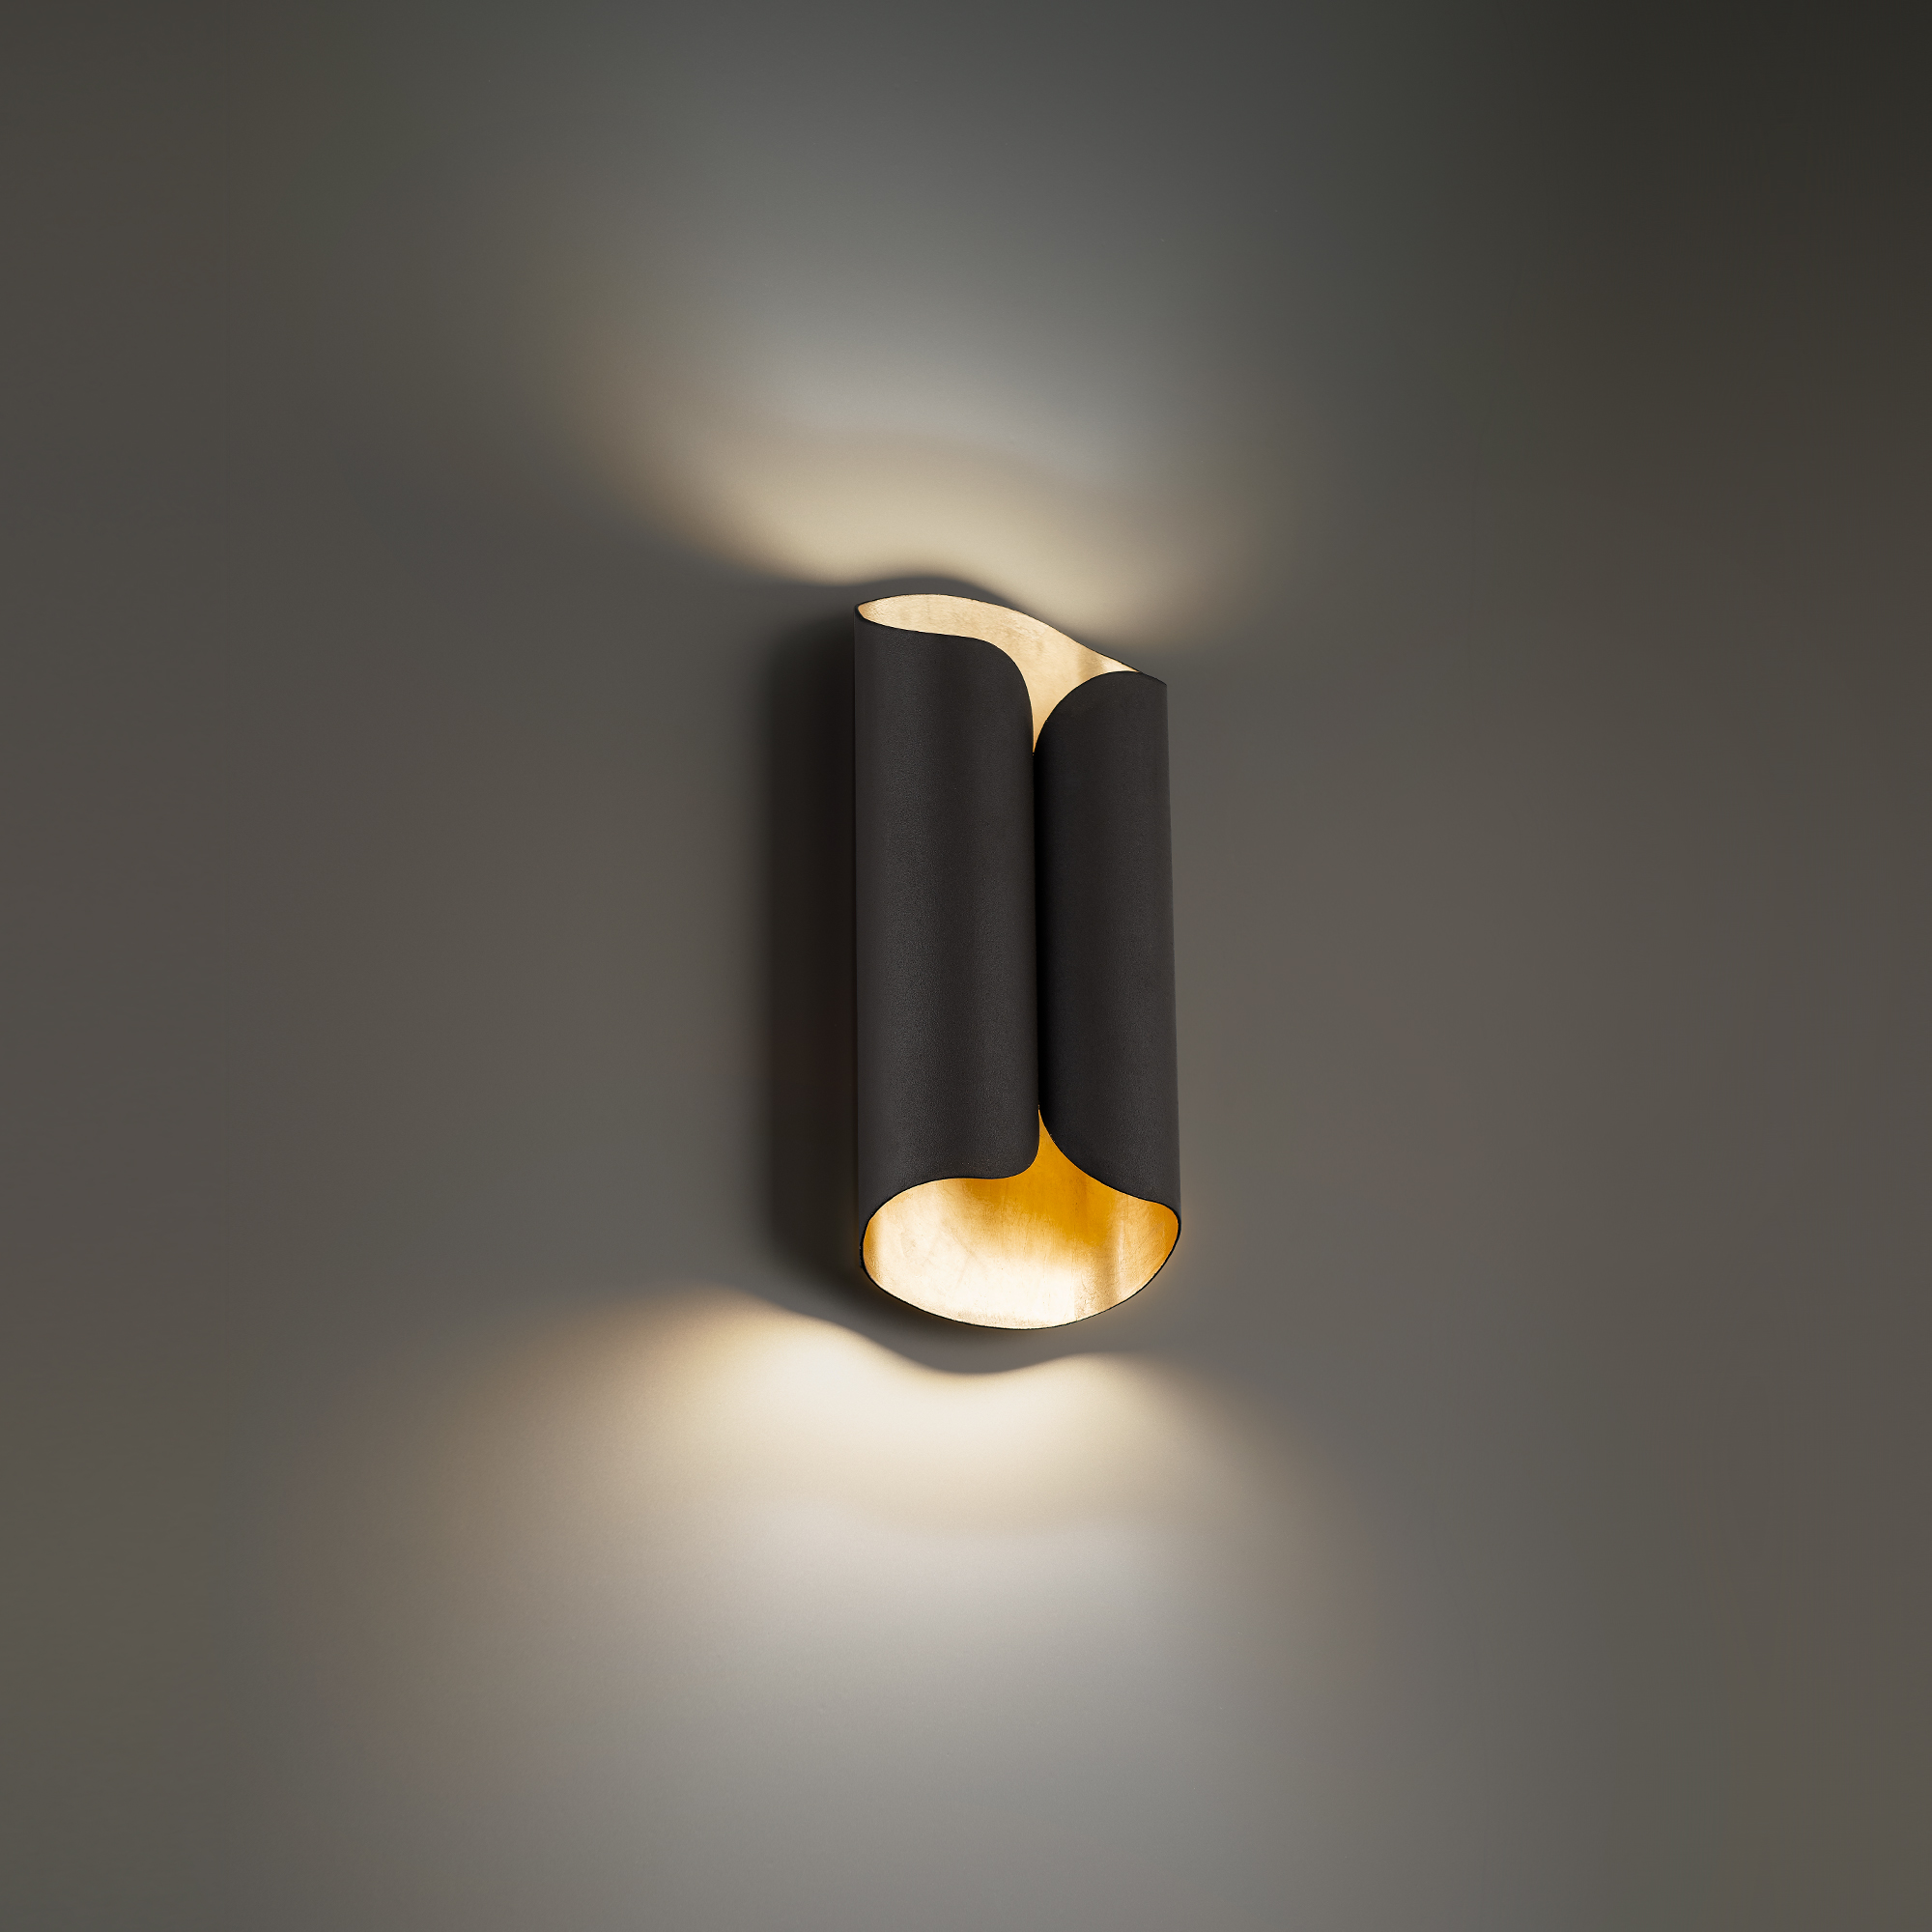 Opus lighting product